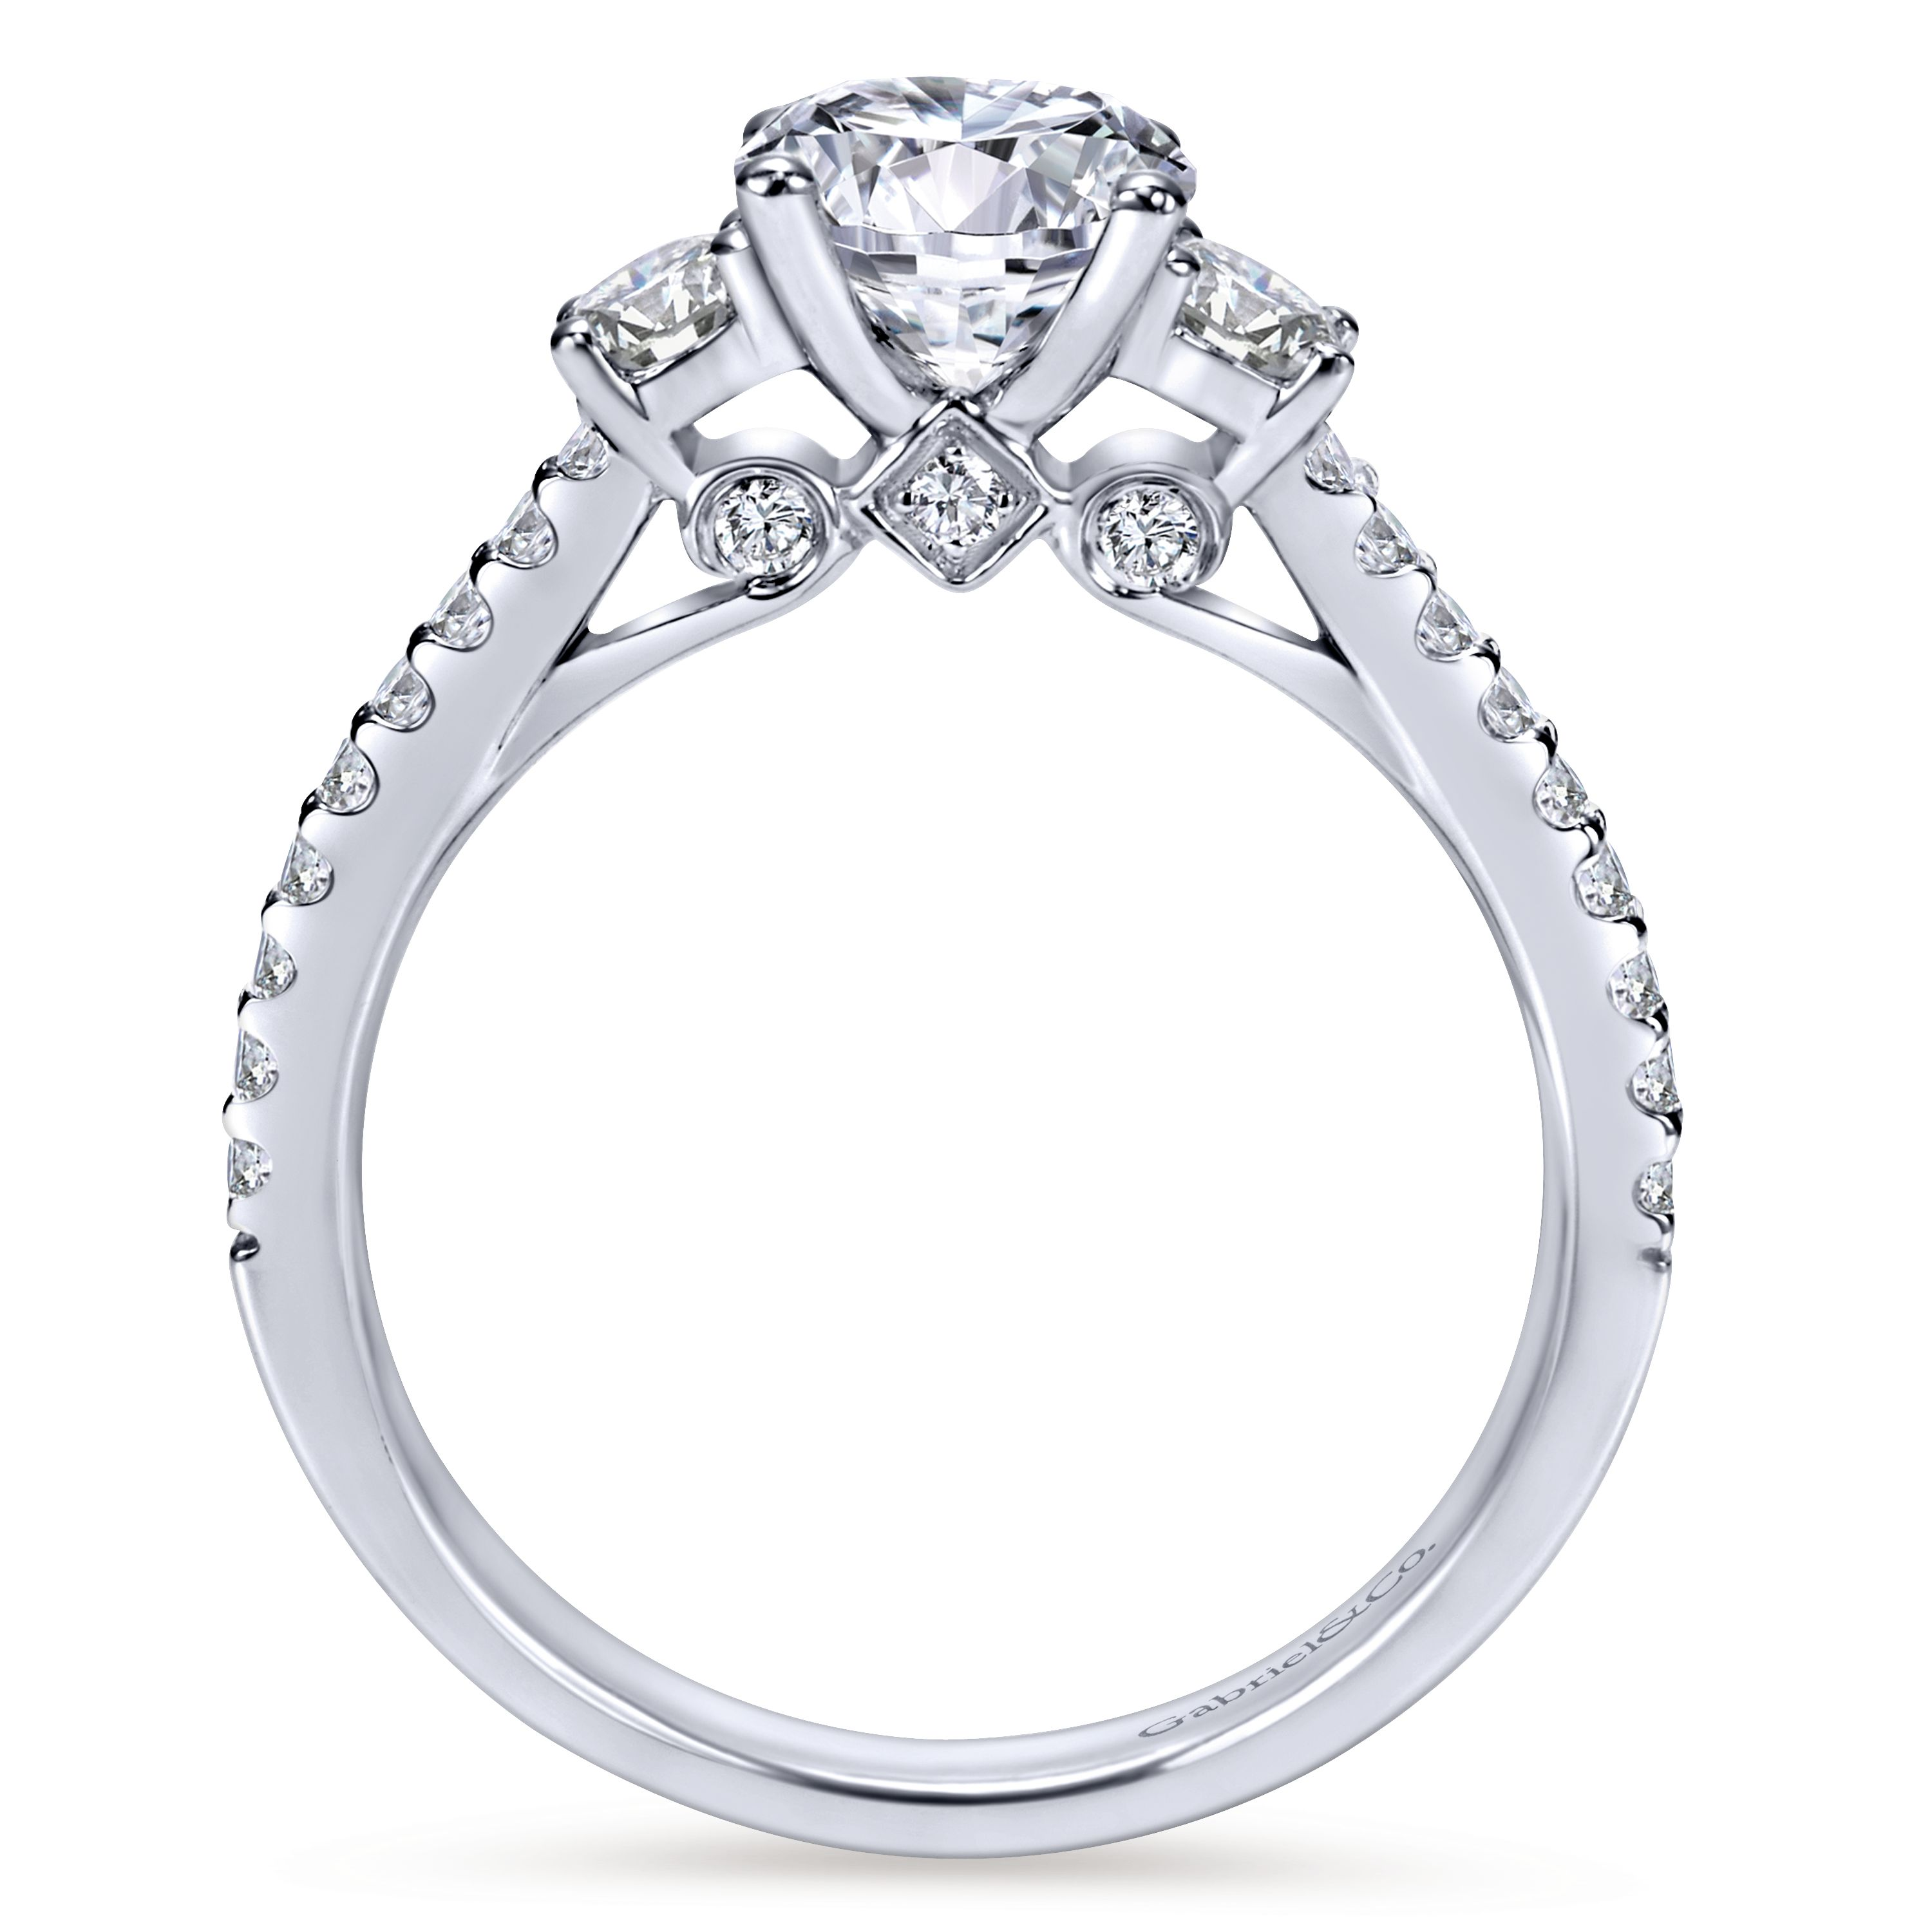 ring jewelry archives sbt imports rings engagement diamond stone ladies